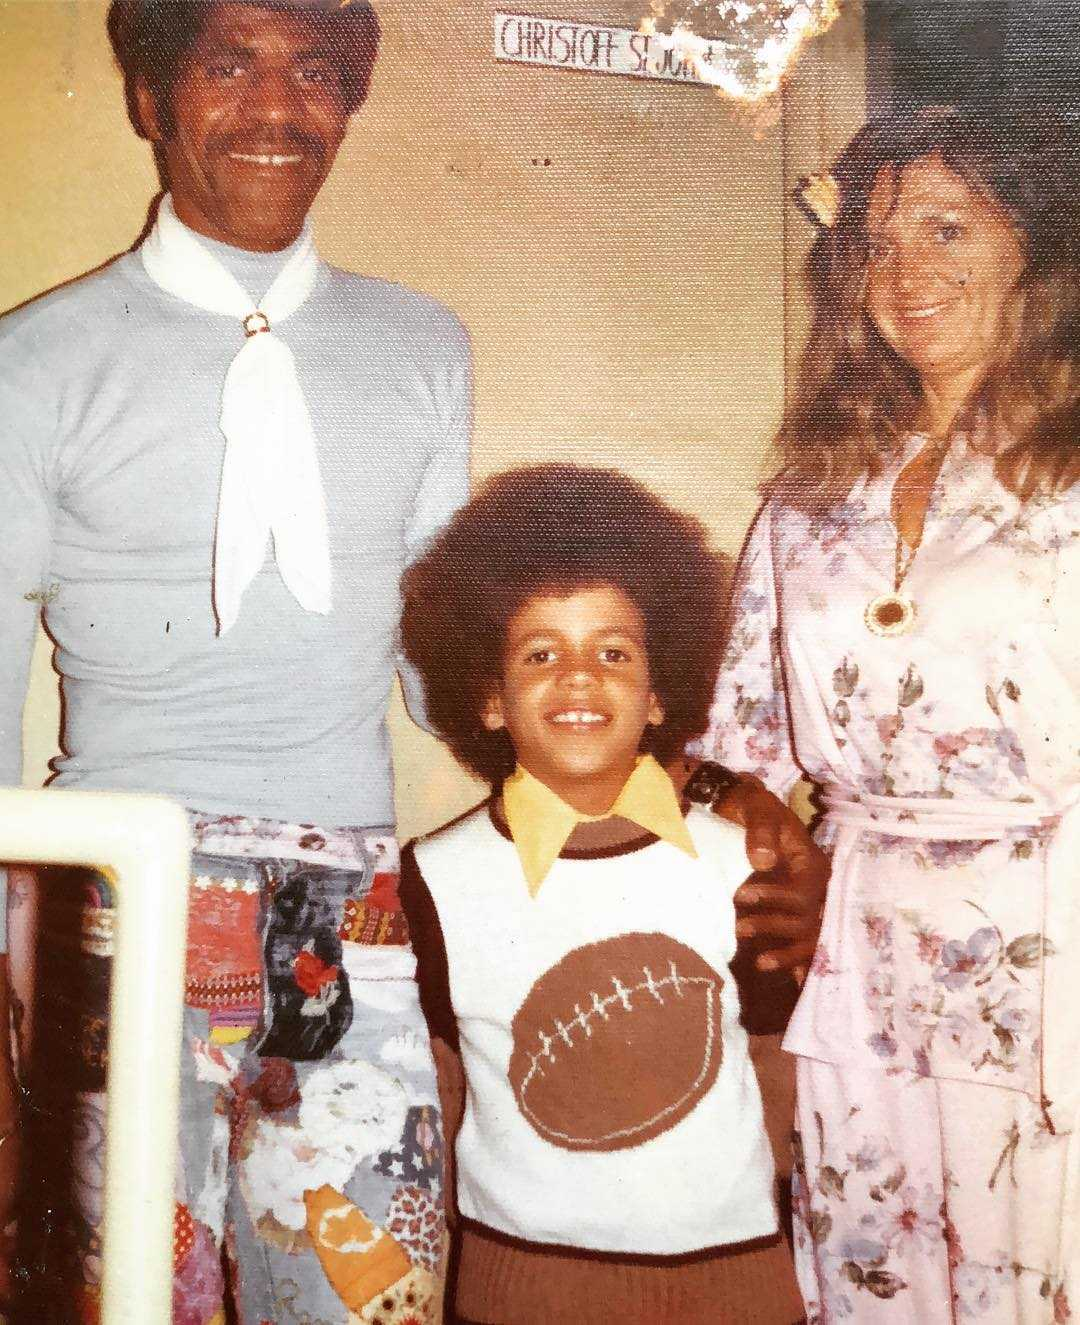 Kristoff St. John and his parents